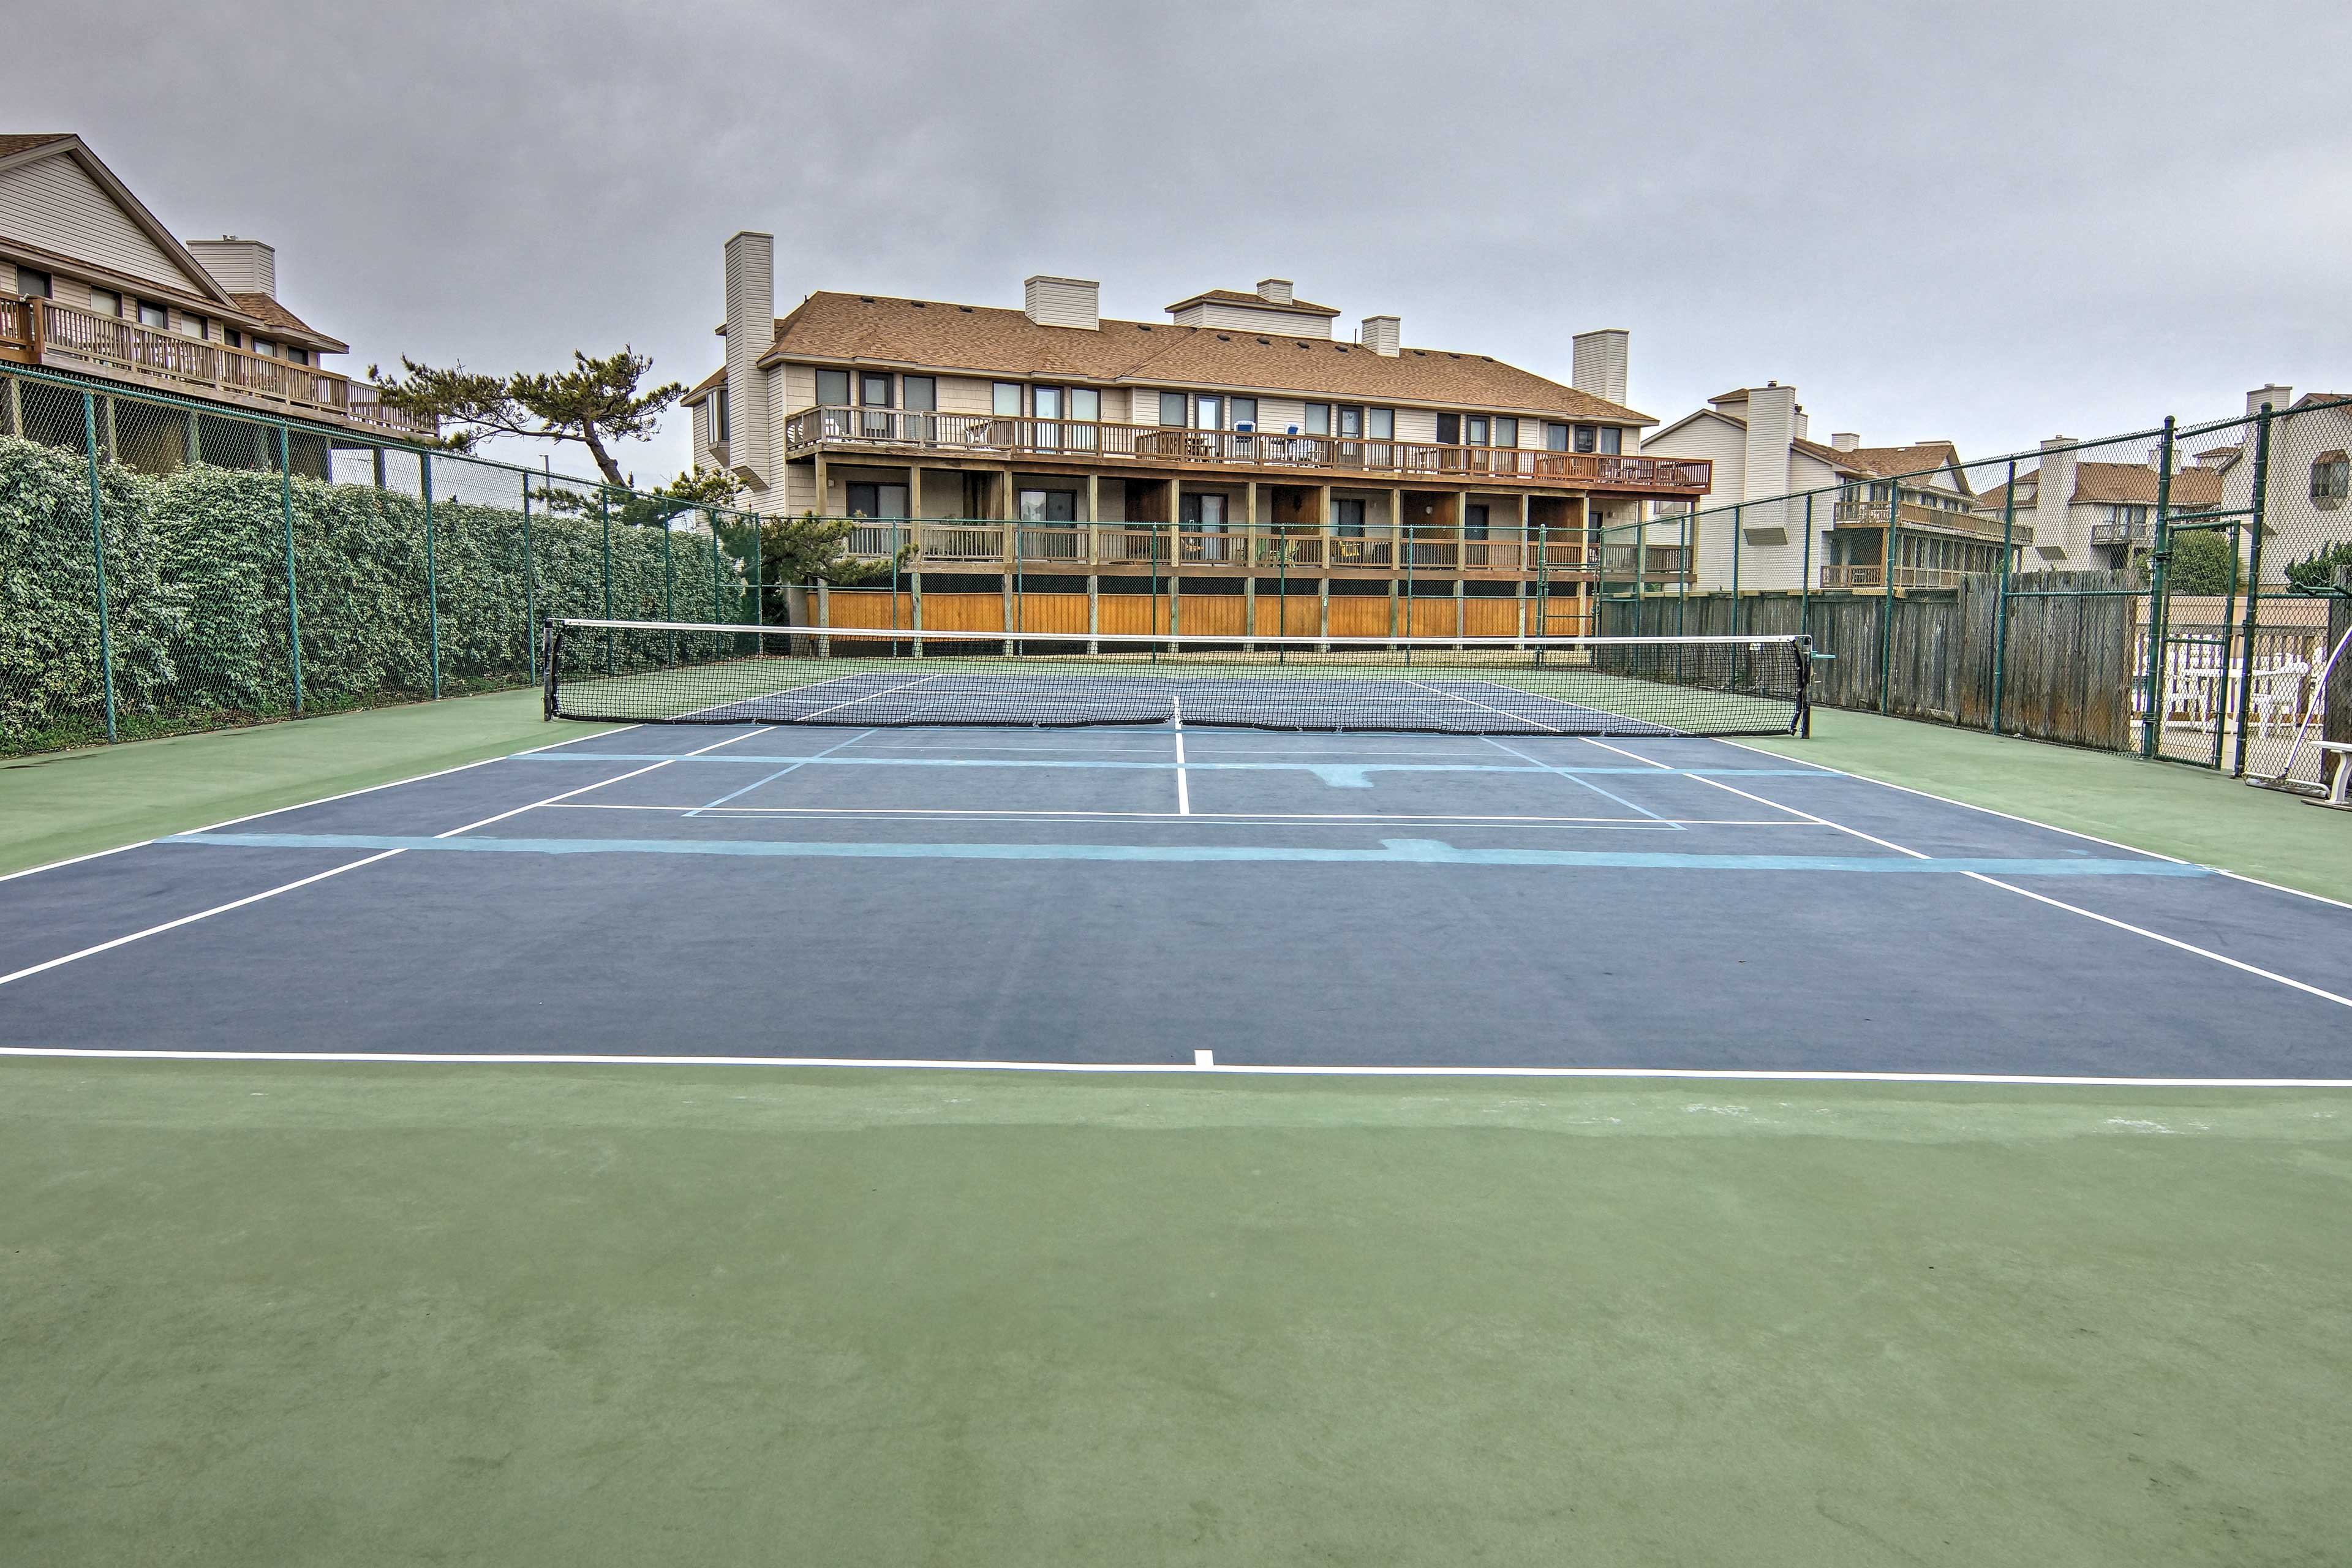 Enjoy a friendly game of tennis or basketball at Sea Dunes!